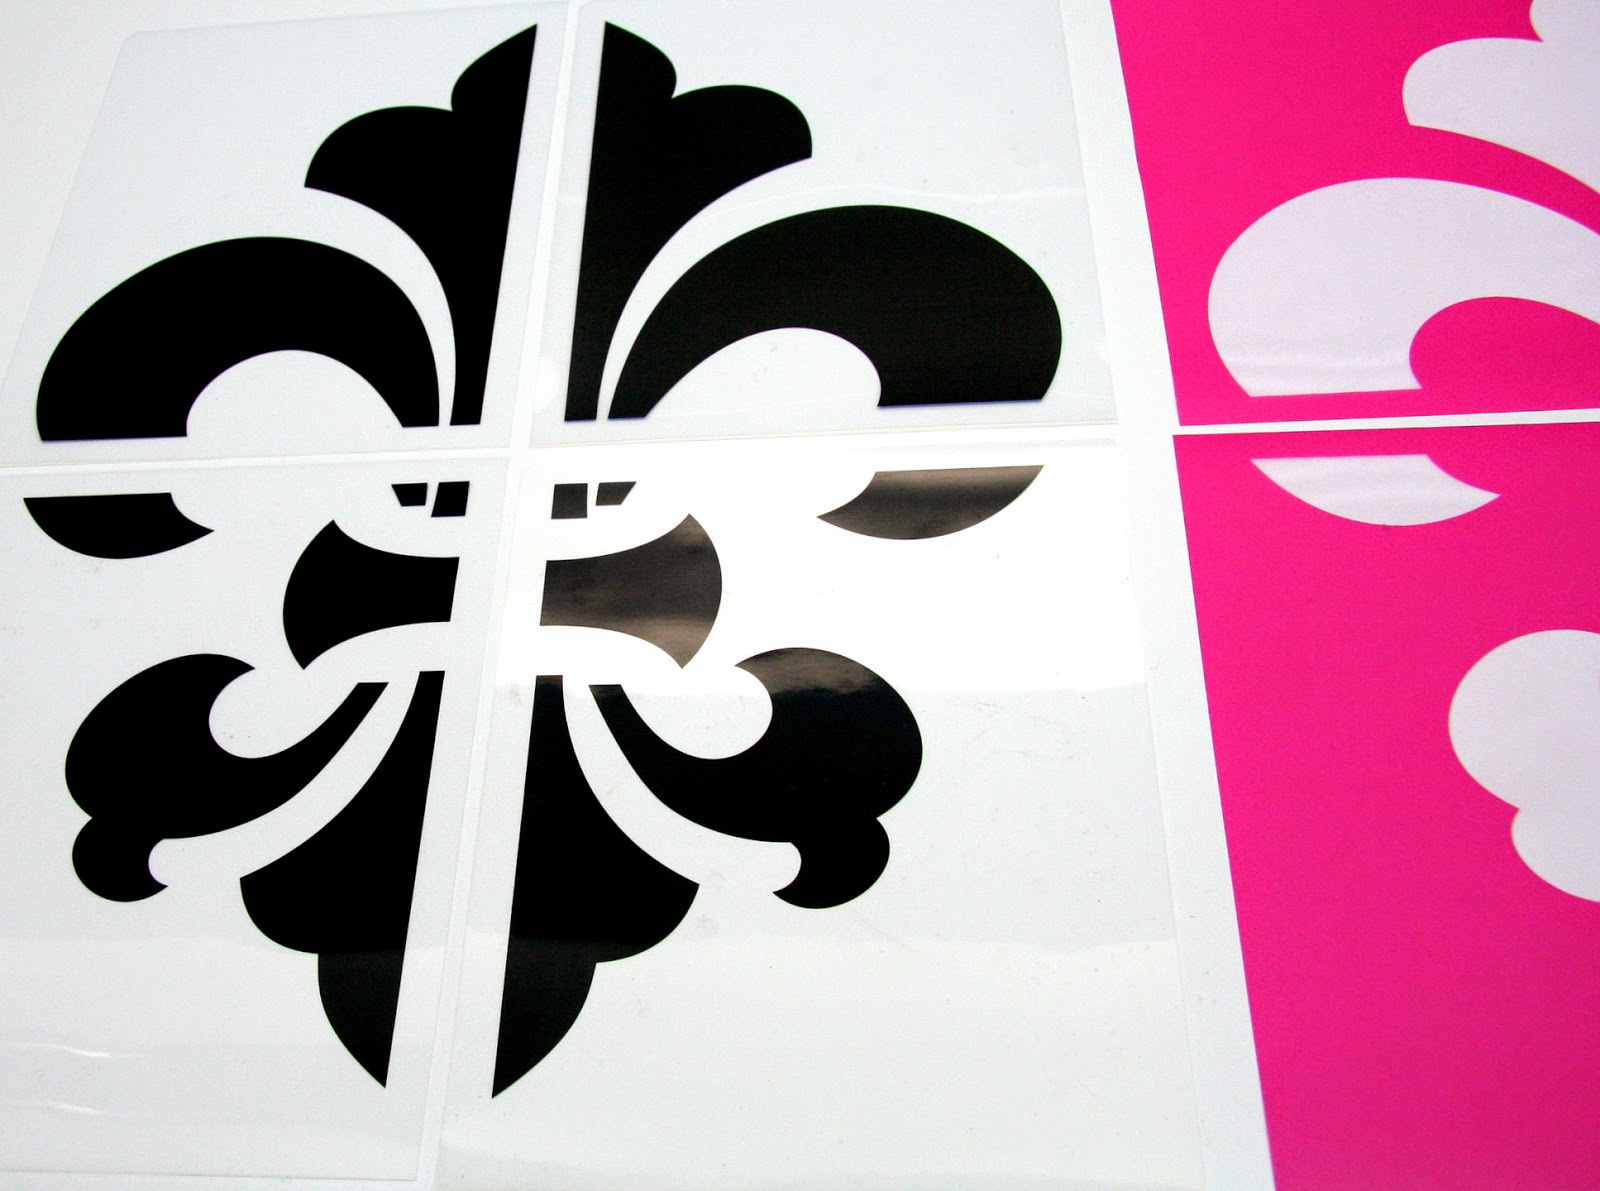 Fleur De Lis Transparency and StencilPro Stencils are Ready for Printing